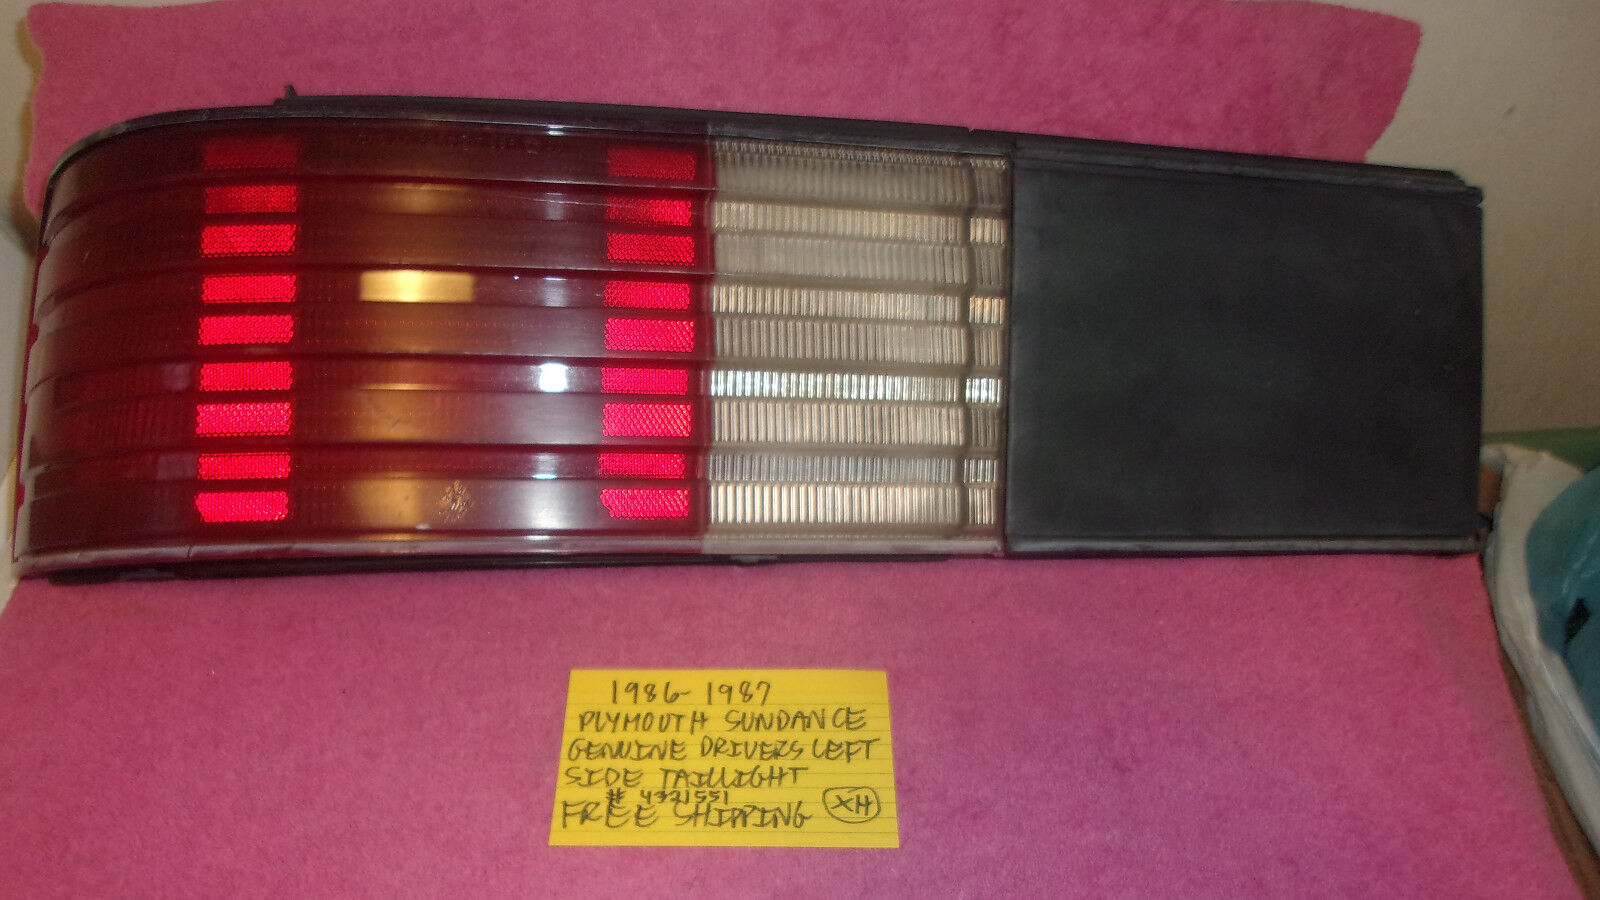 Used Plymouth Sundance Tail Lights For Sale 1993 Wiring Harness 1986 1987 Factory Oem Drivers Left Taillight Free Shipping